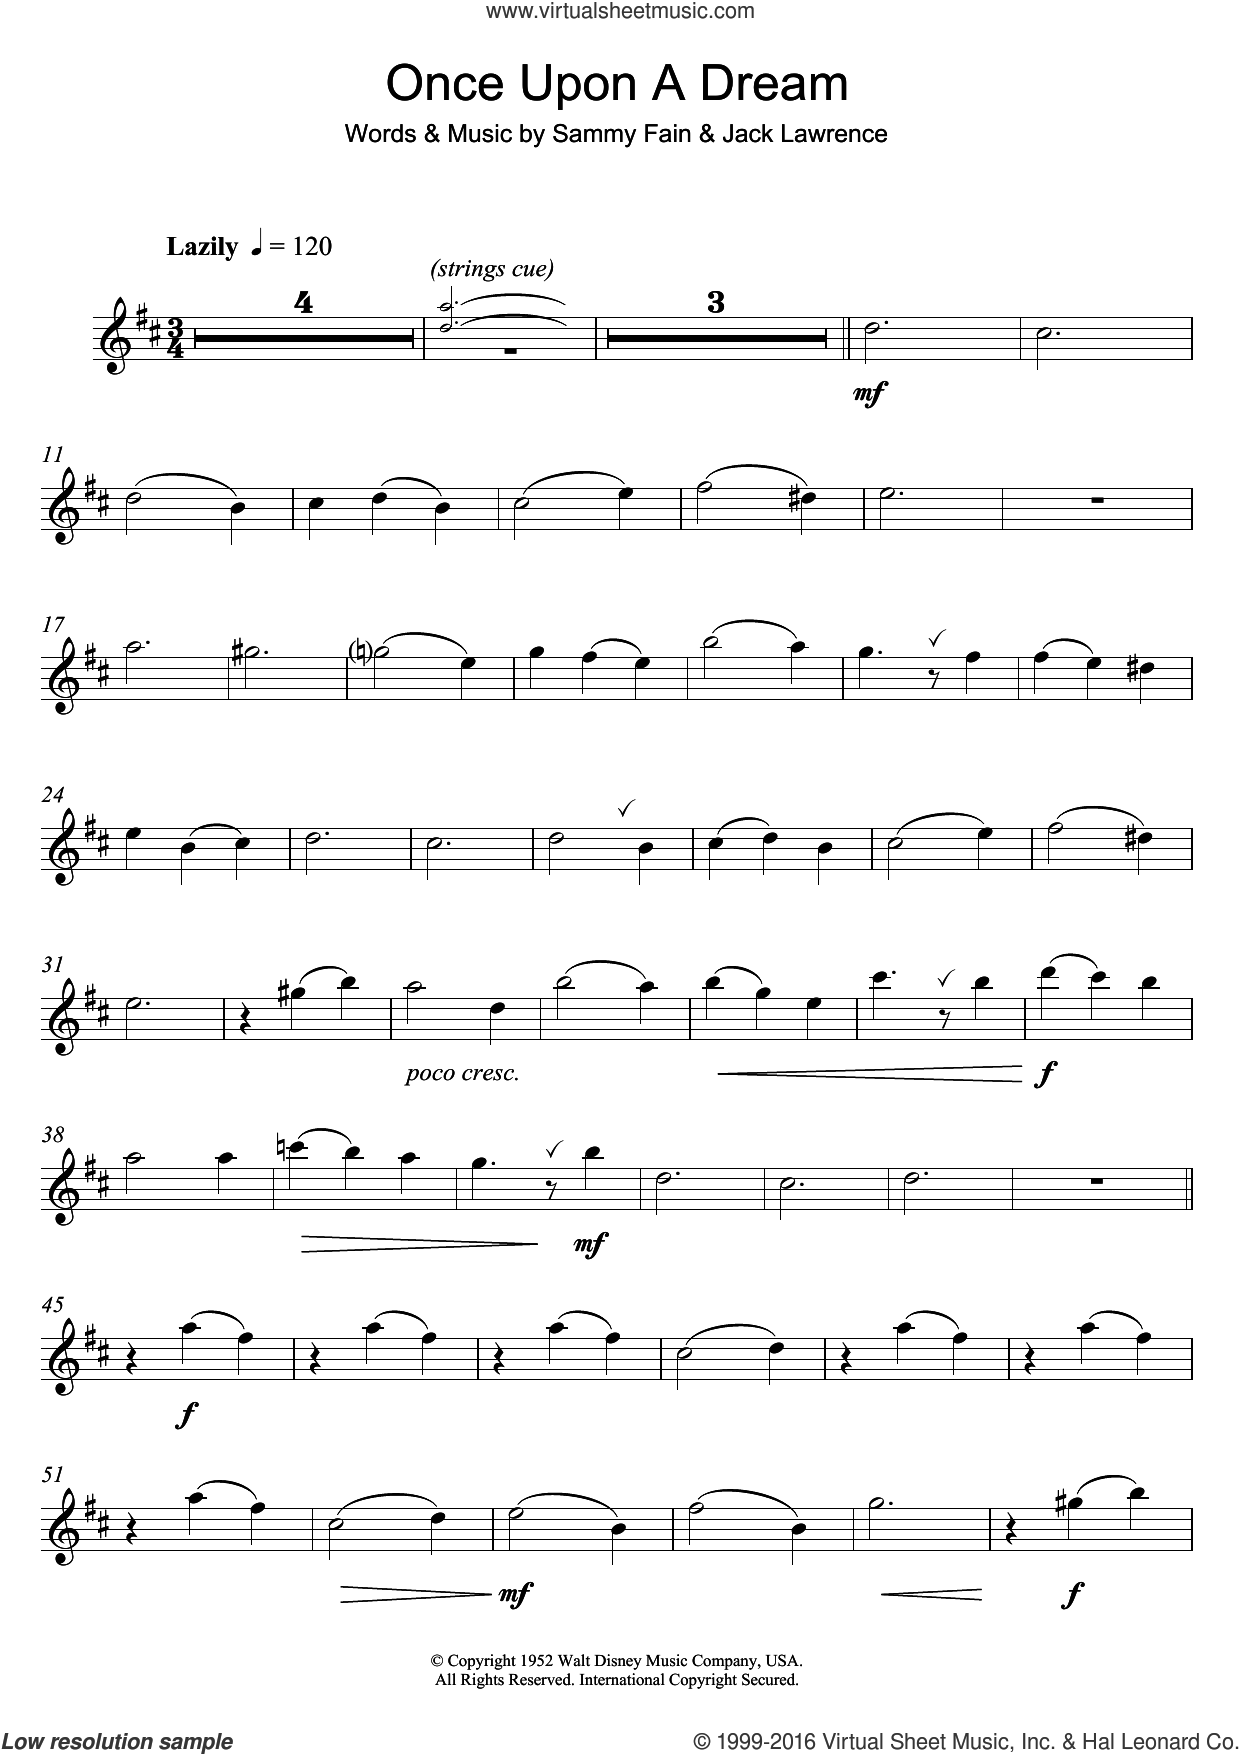 Once Upon A Dream sheet music for alto saxophone solo by Lana Del Rey, Jack Lawrence and Sammy Fain, intermediate skill level